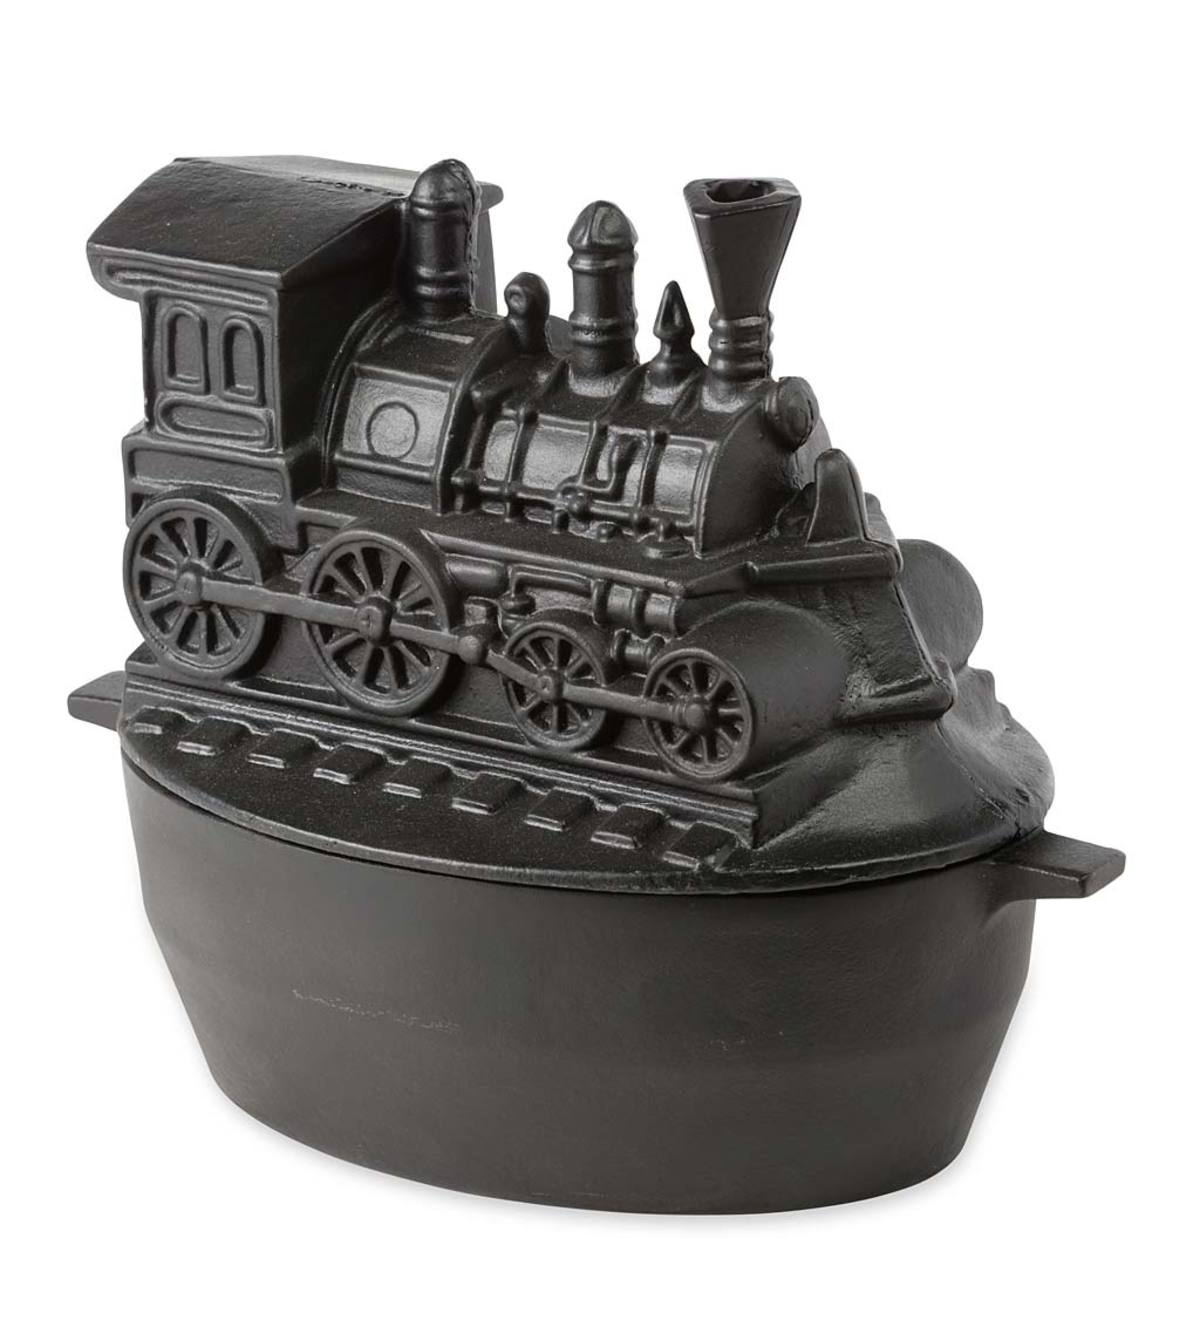 Nycrr Cast Iron Train: Cast Iron Woodstove Steamer Kettle / Humidifier In Train